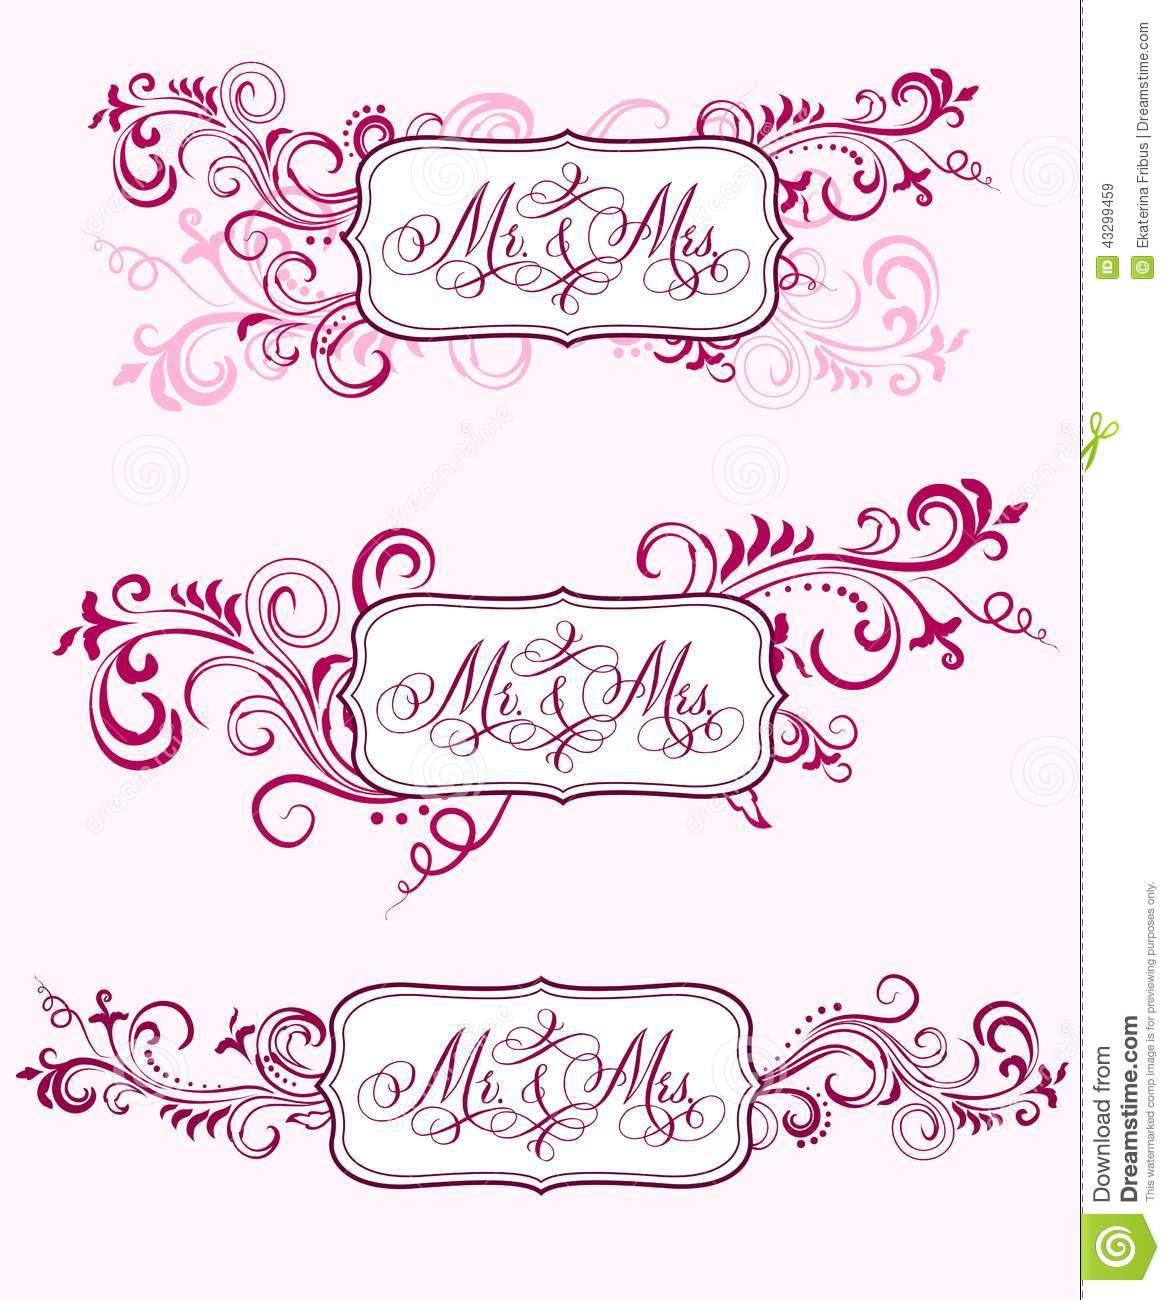 Hand-written with pointed pen and ink traditional wedding words 'Mr ...